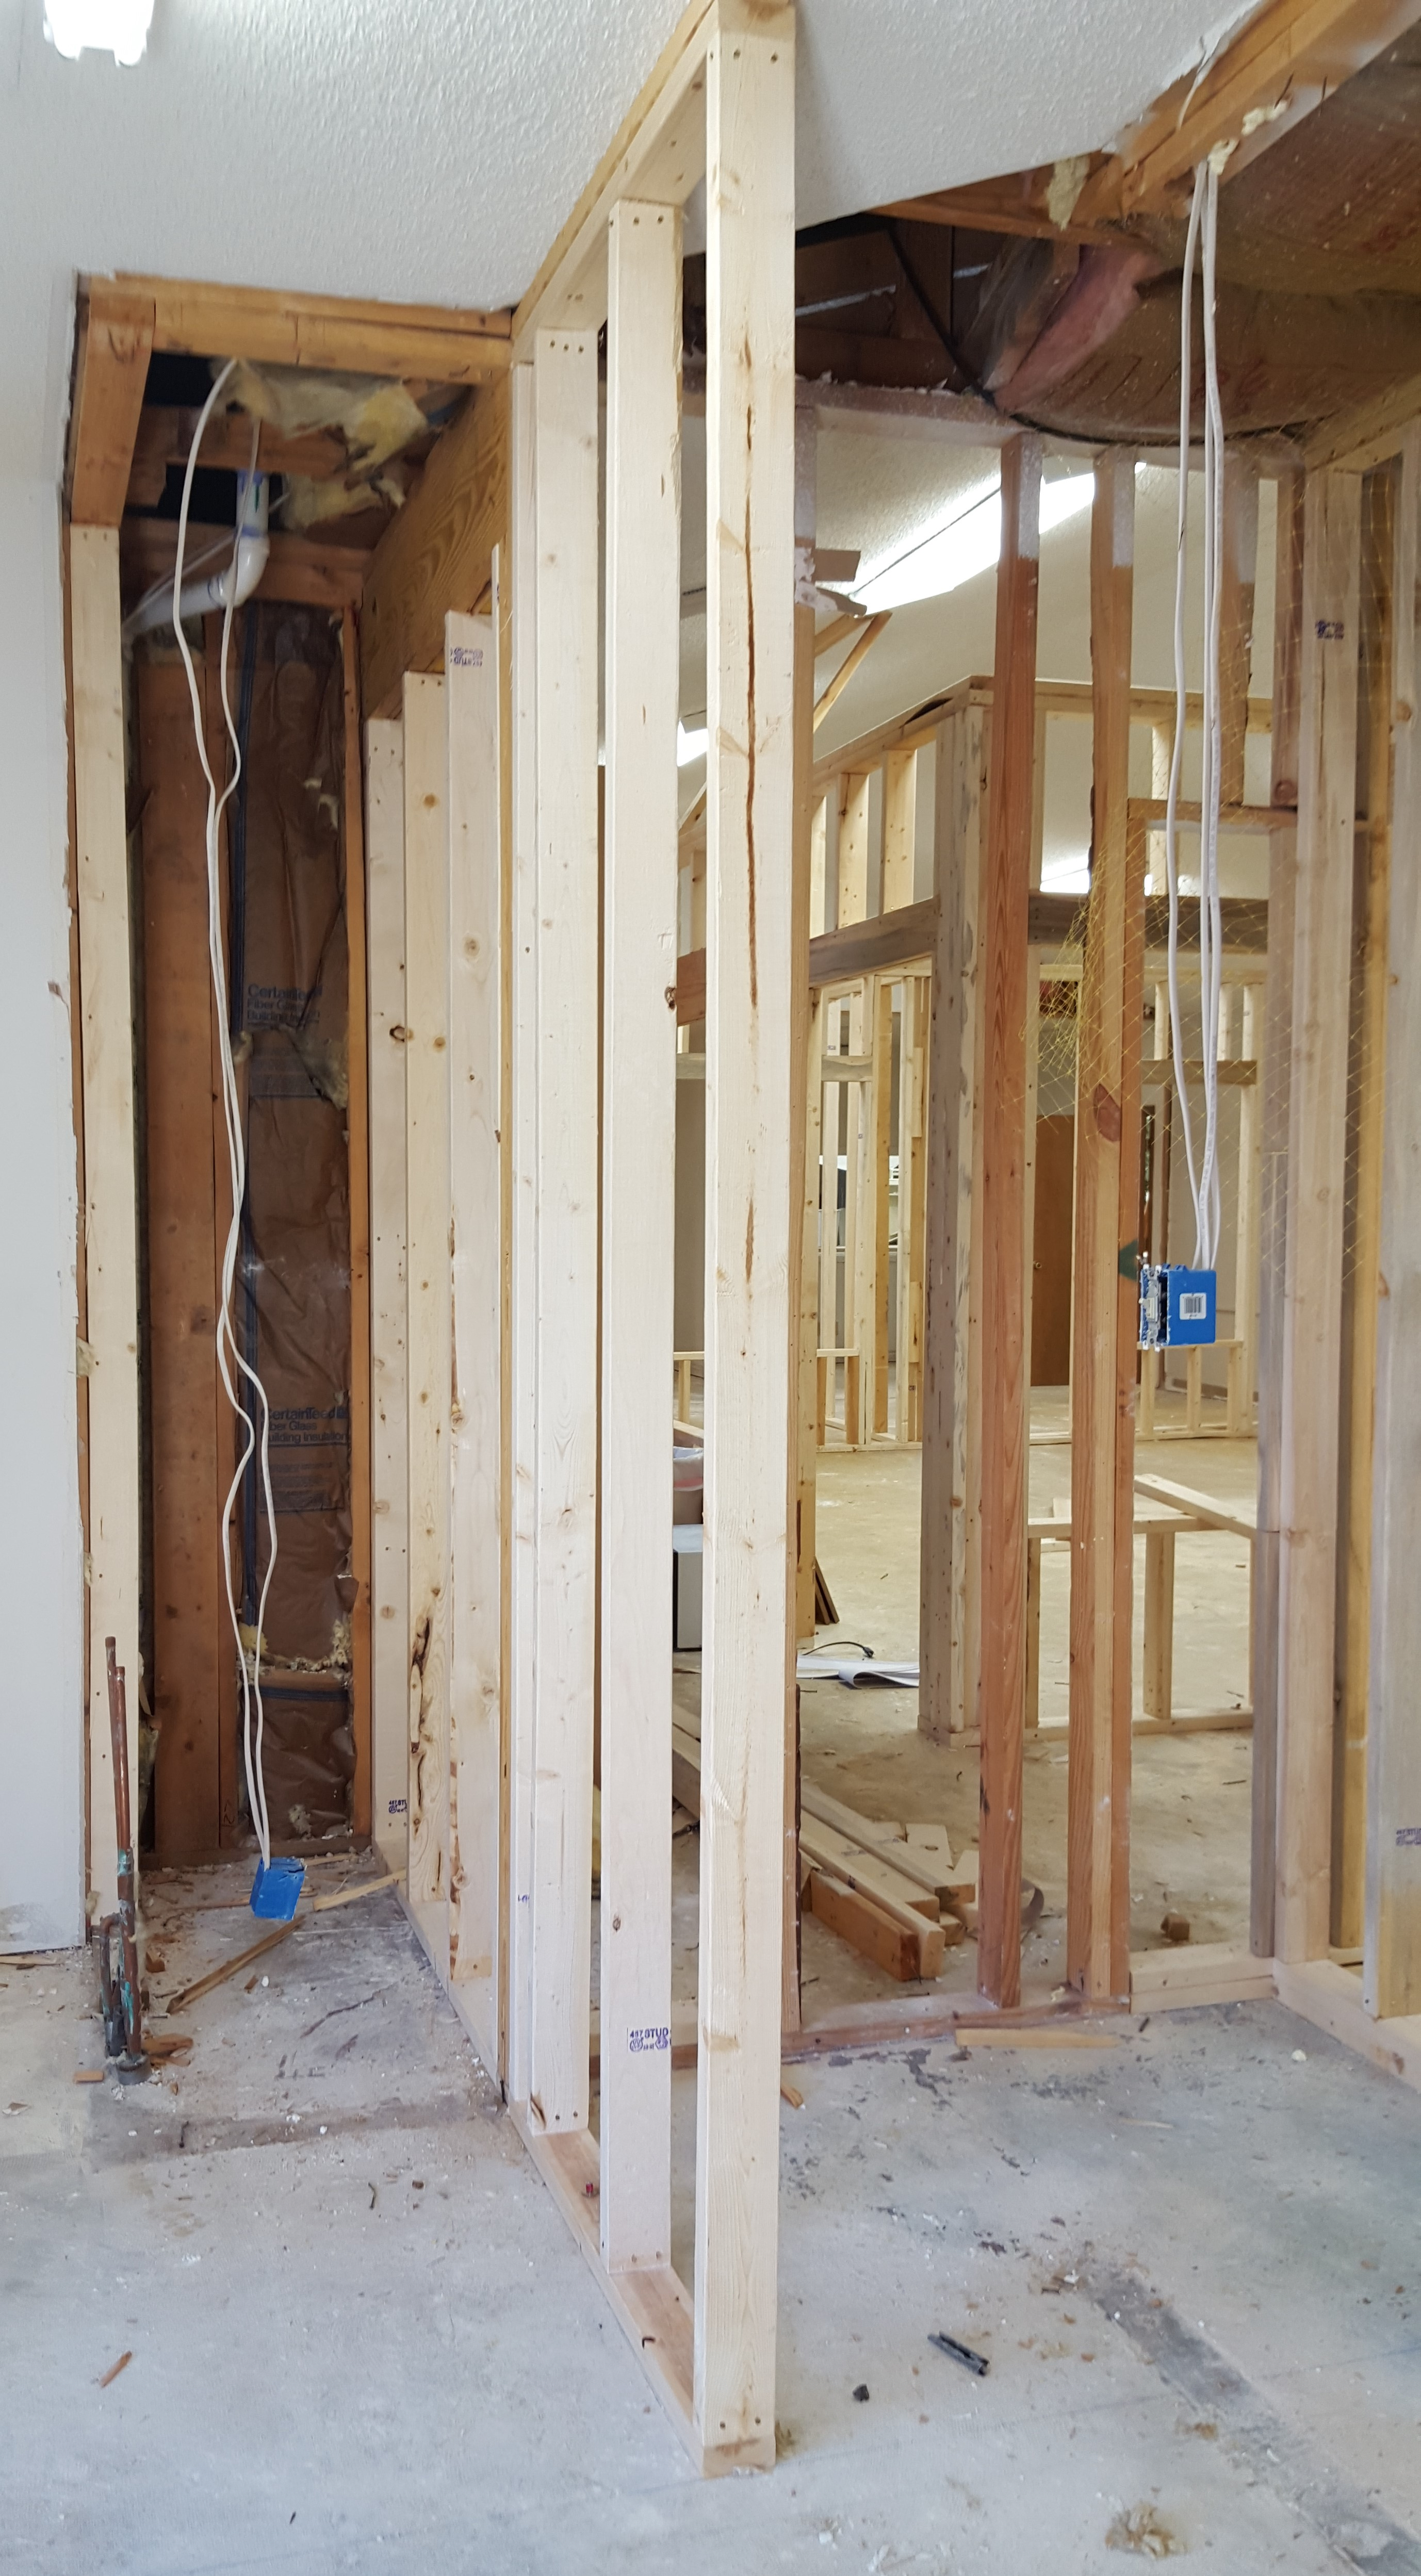 Library Expansion - Construciton - 10-10-16 -12.jpg